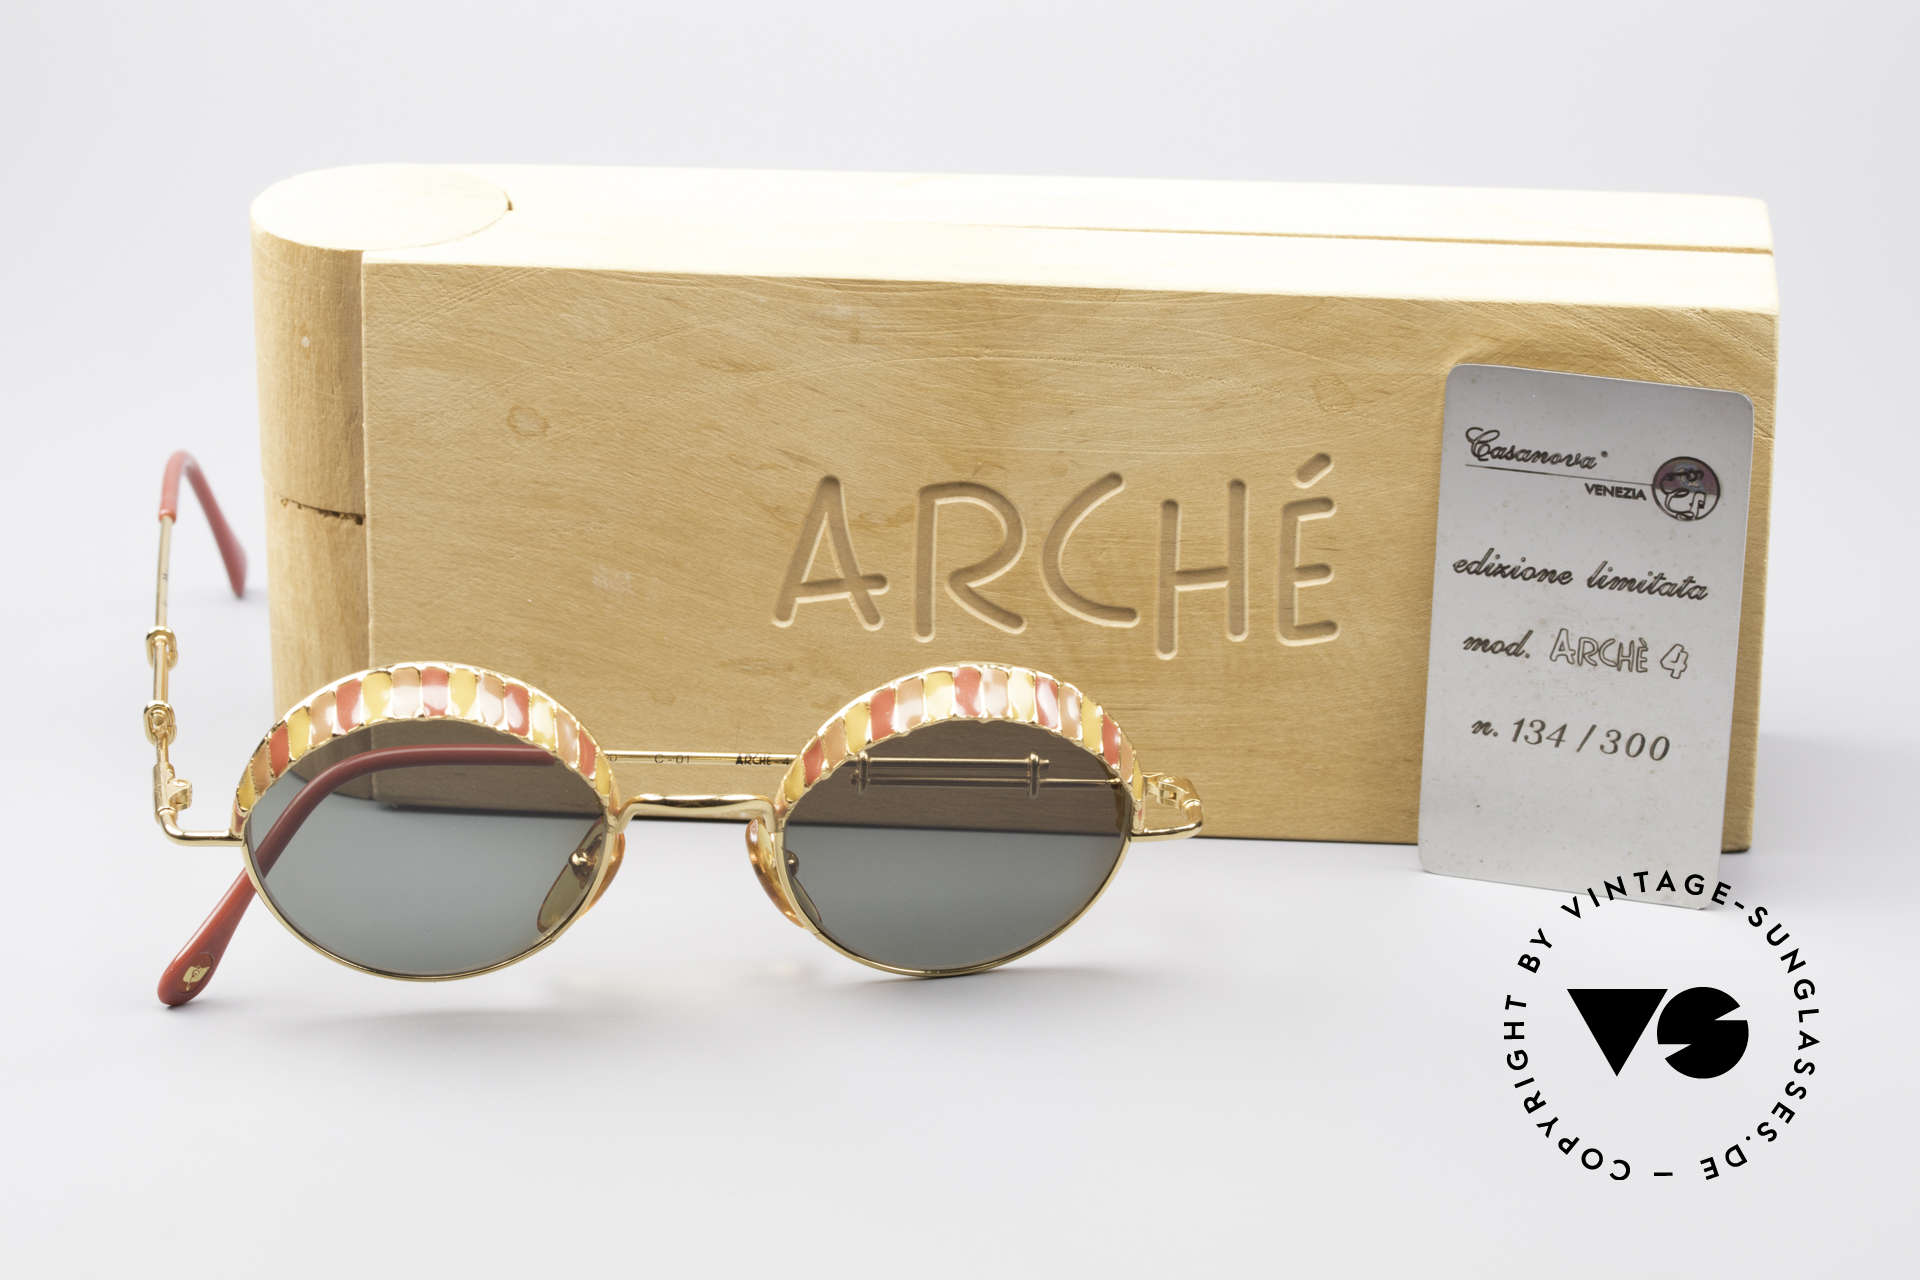 Casanova Arché 4 Limited Gold Plated Frame, unworn + orig. wood box & certificate (collector's item), Made for Men and Women